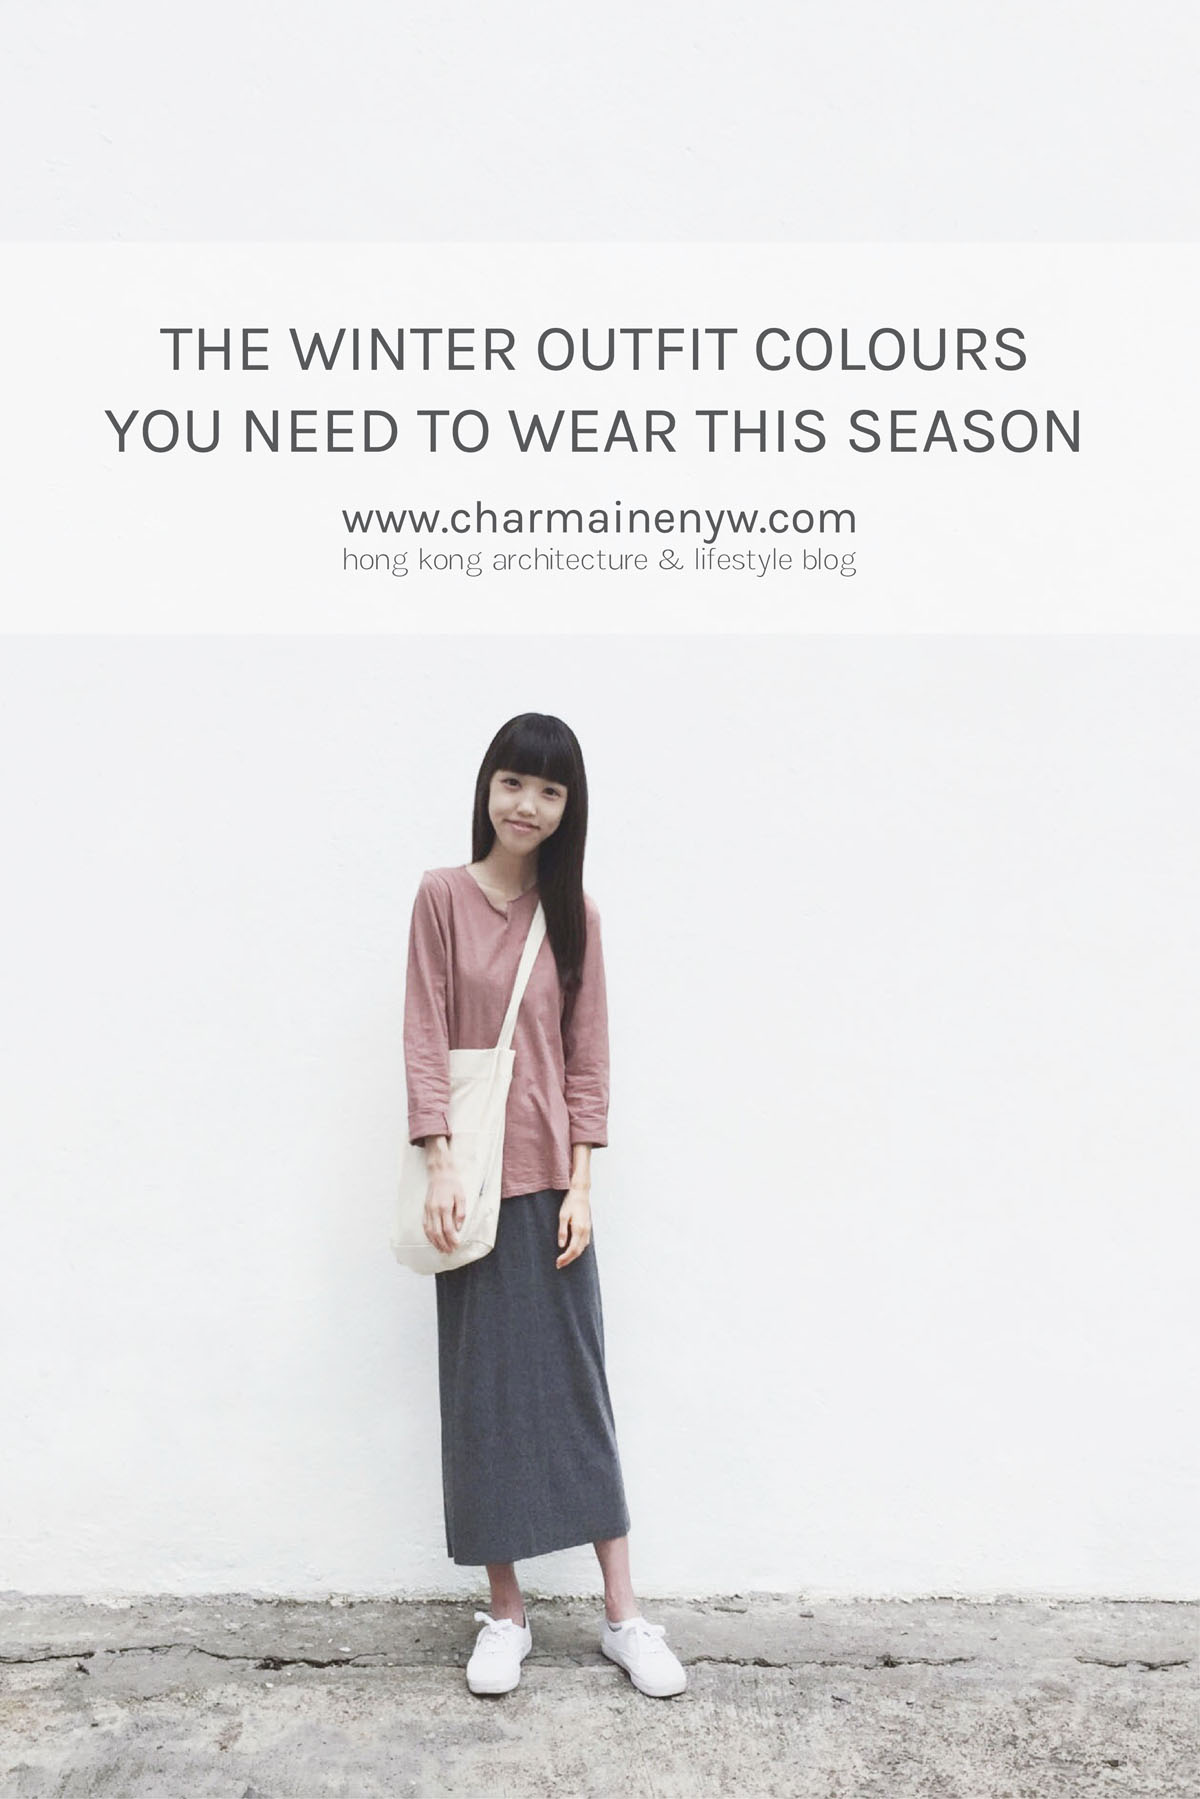 The winter outfit colours you need to wear this season